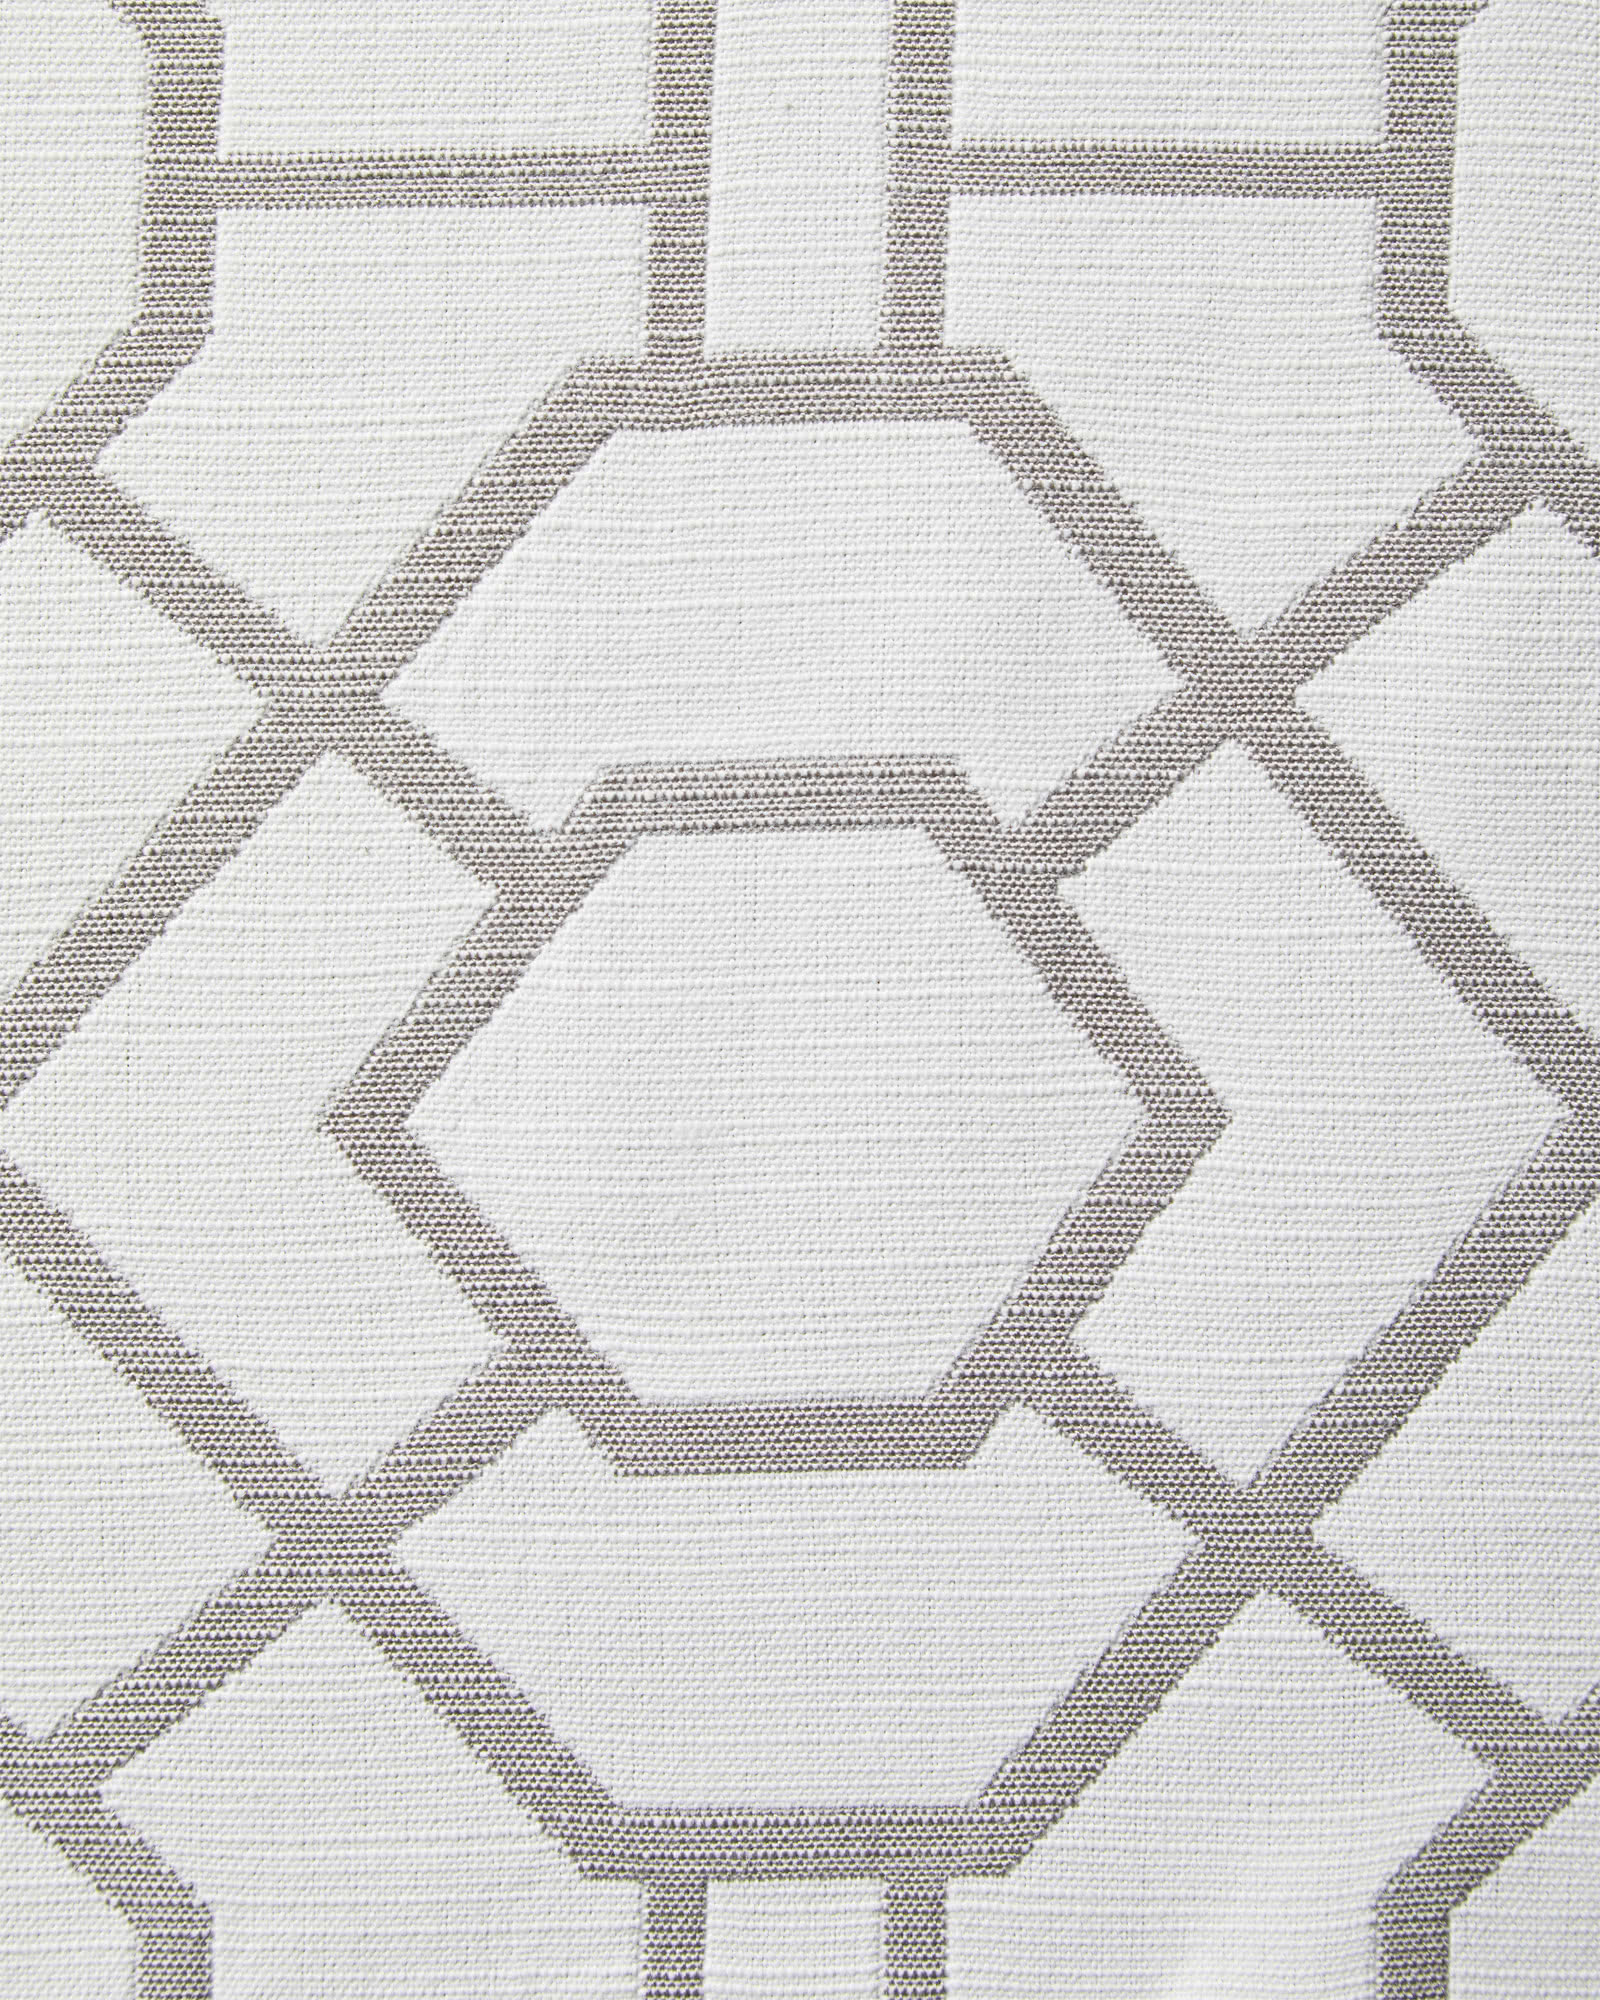 Perennials® Trellis - White/Smoke,